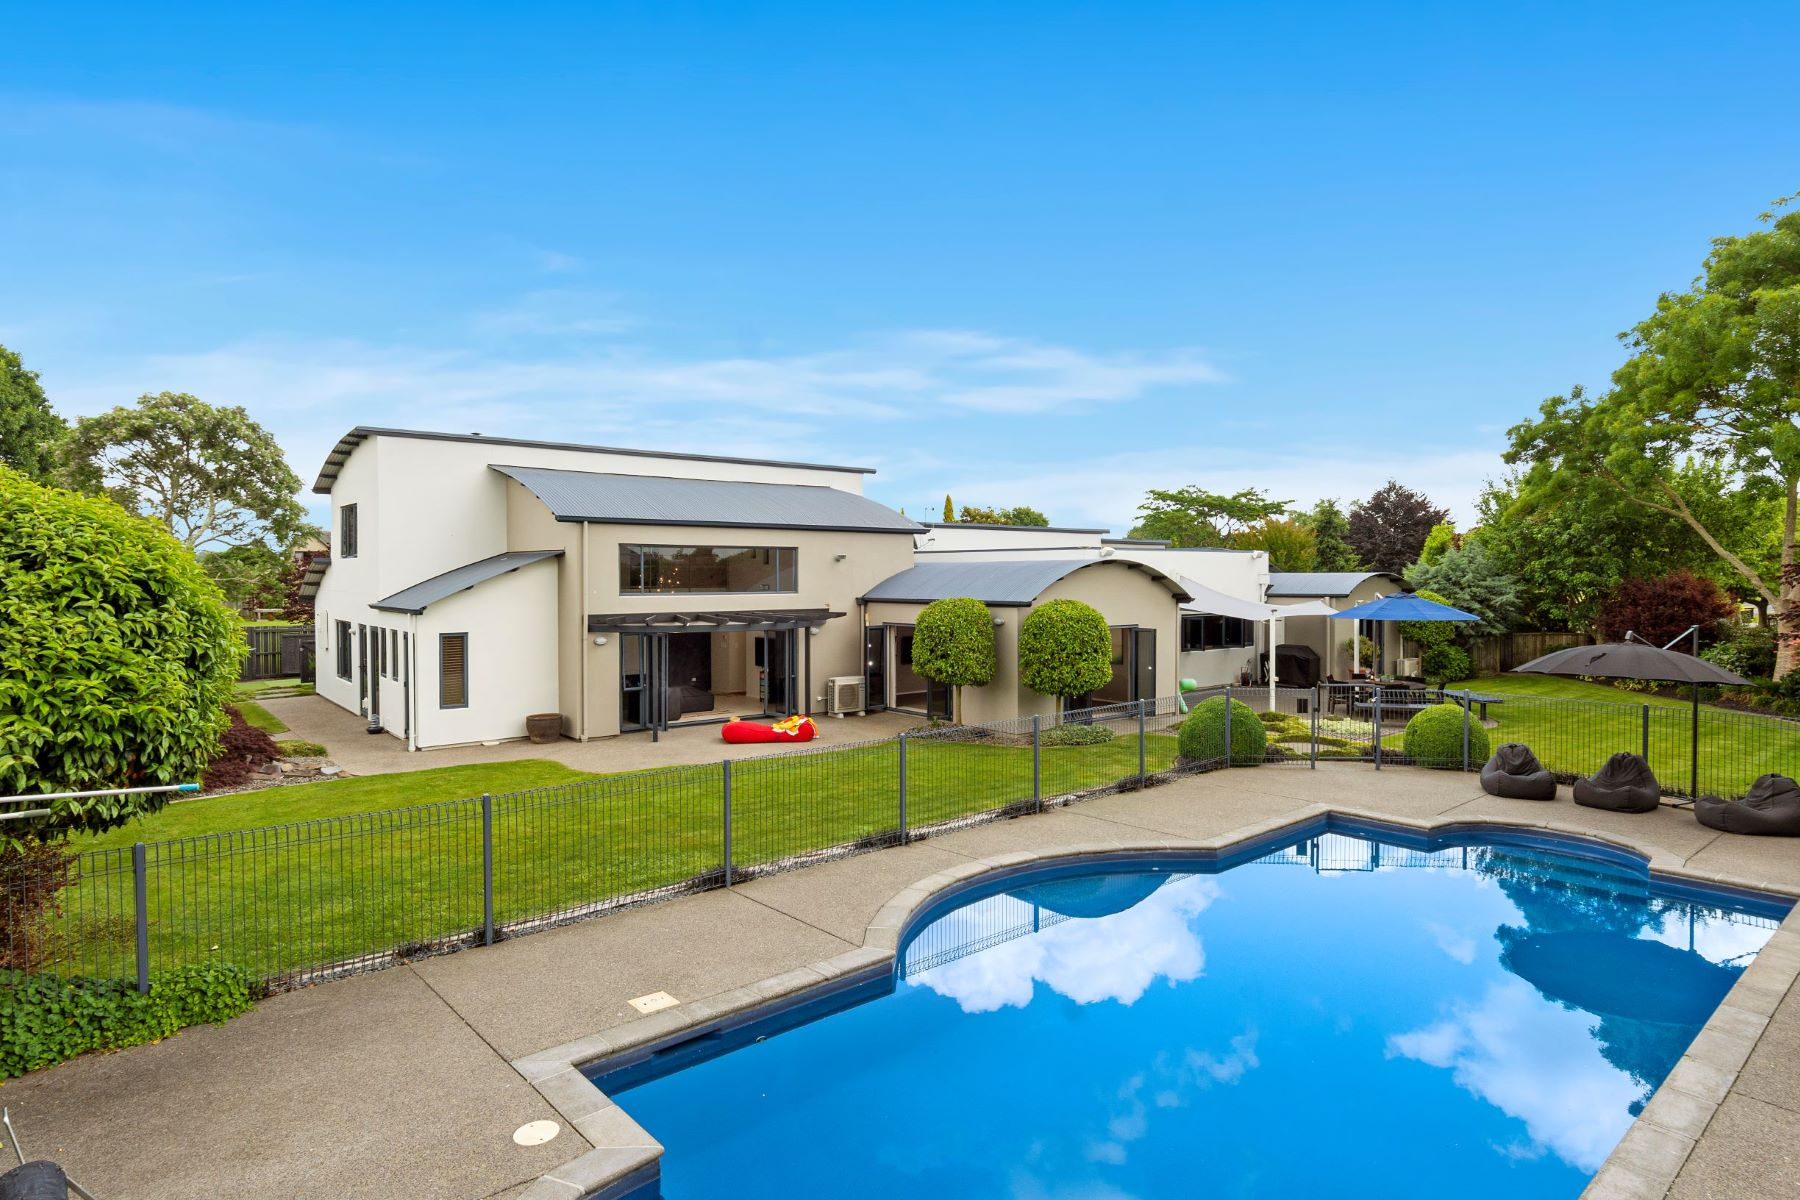 Single Family Homes for Sale at 10 Ascot Place Other Waikato, Waikato 3400 New Zealand